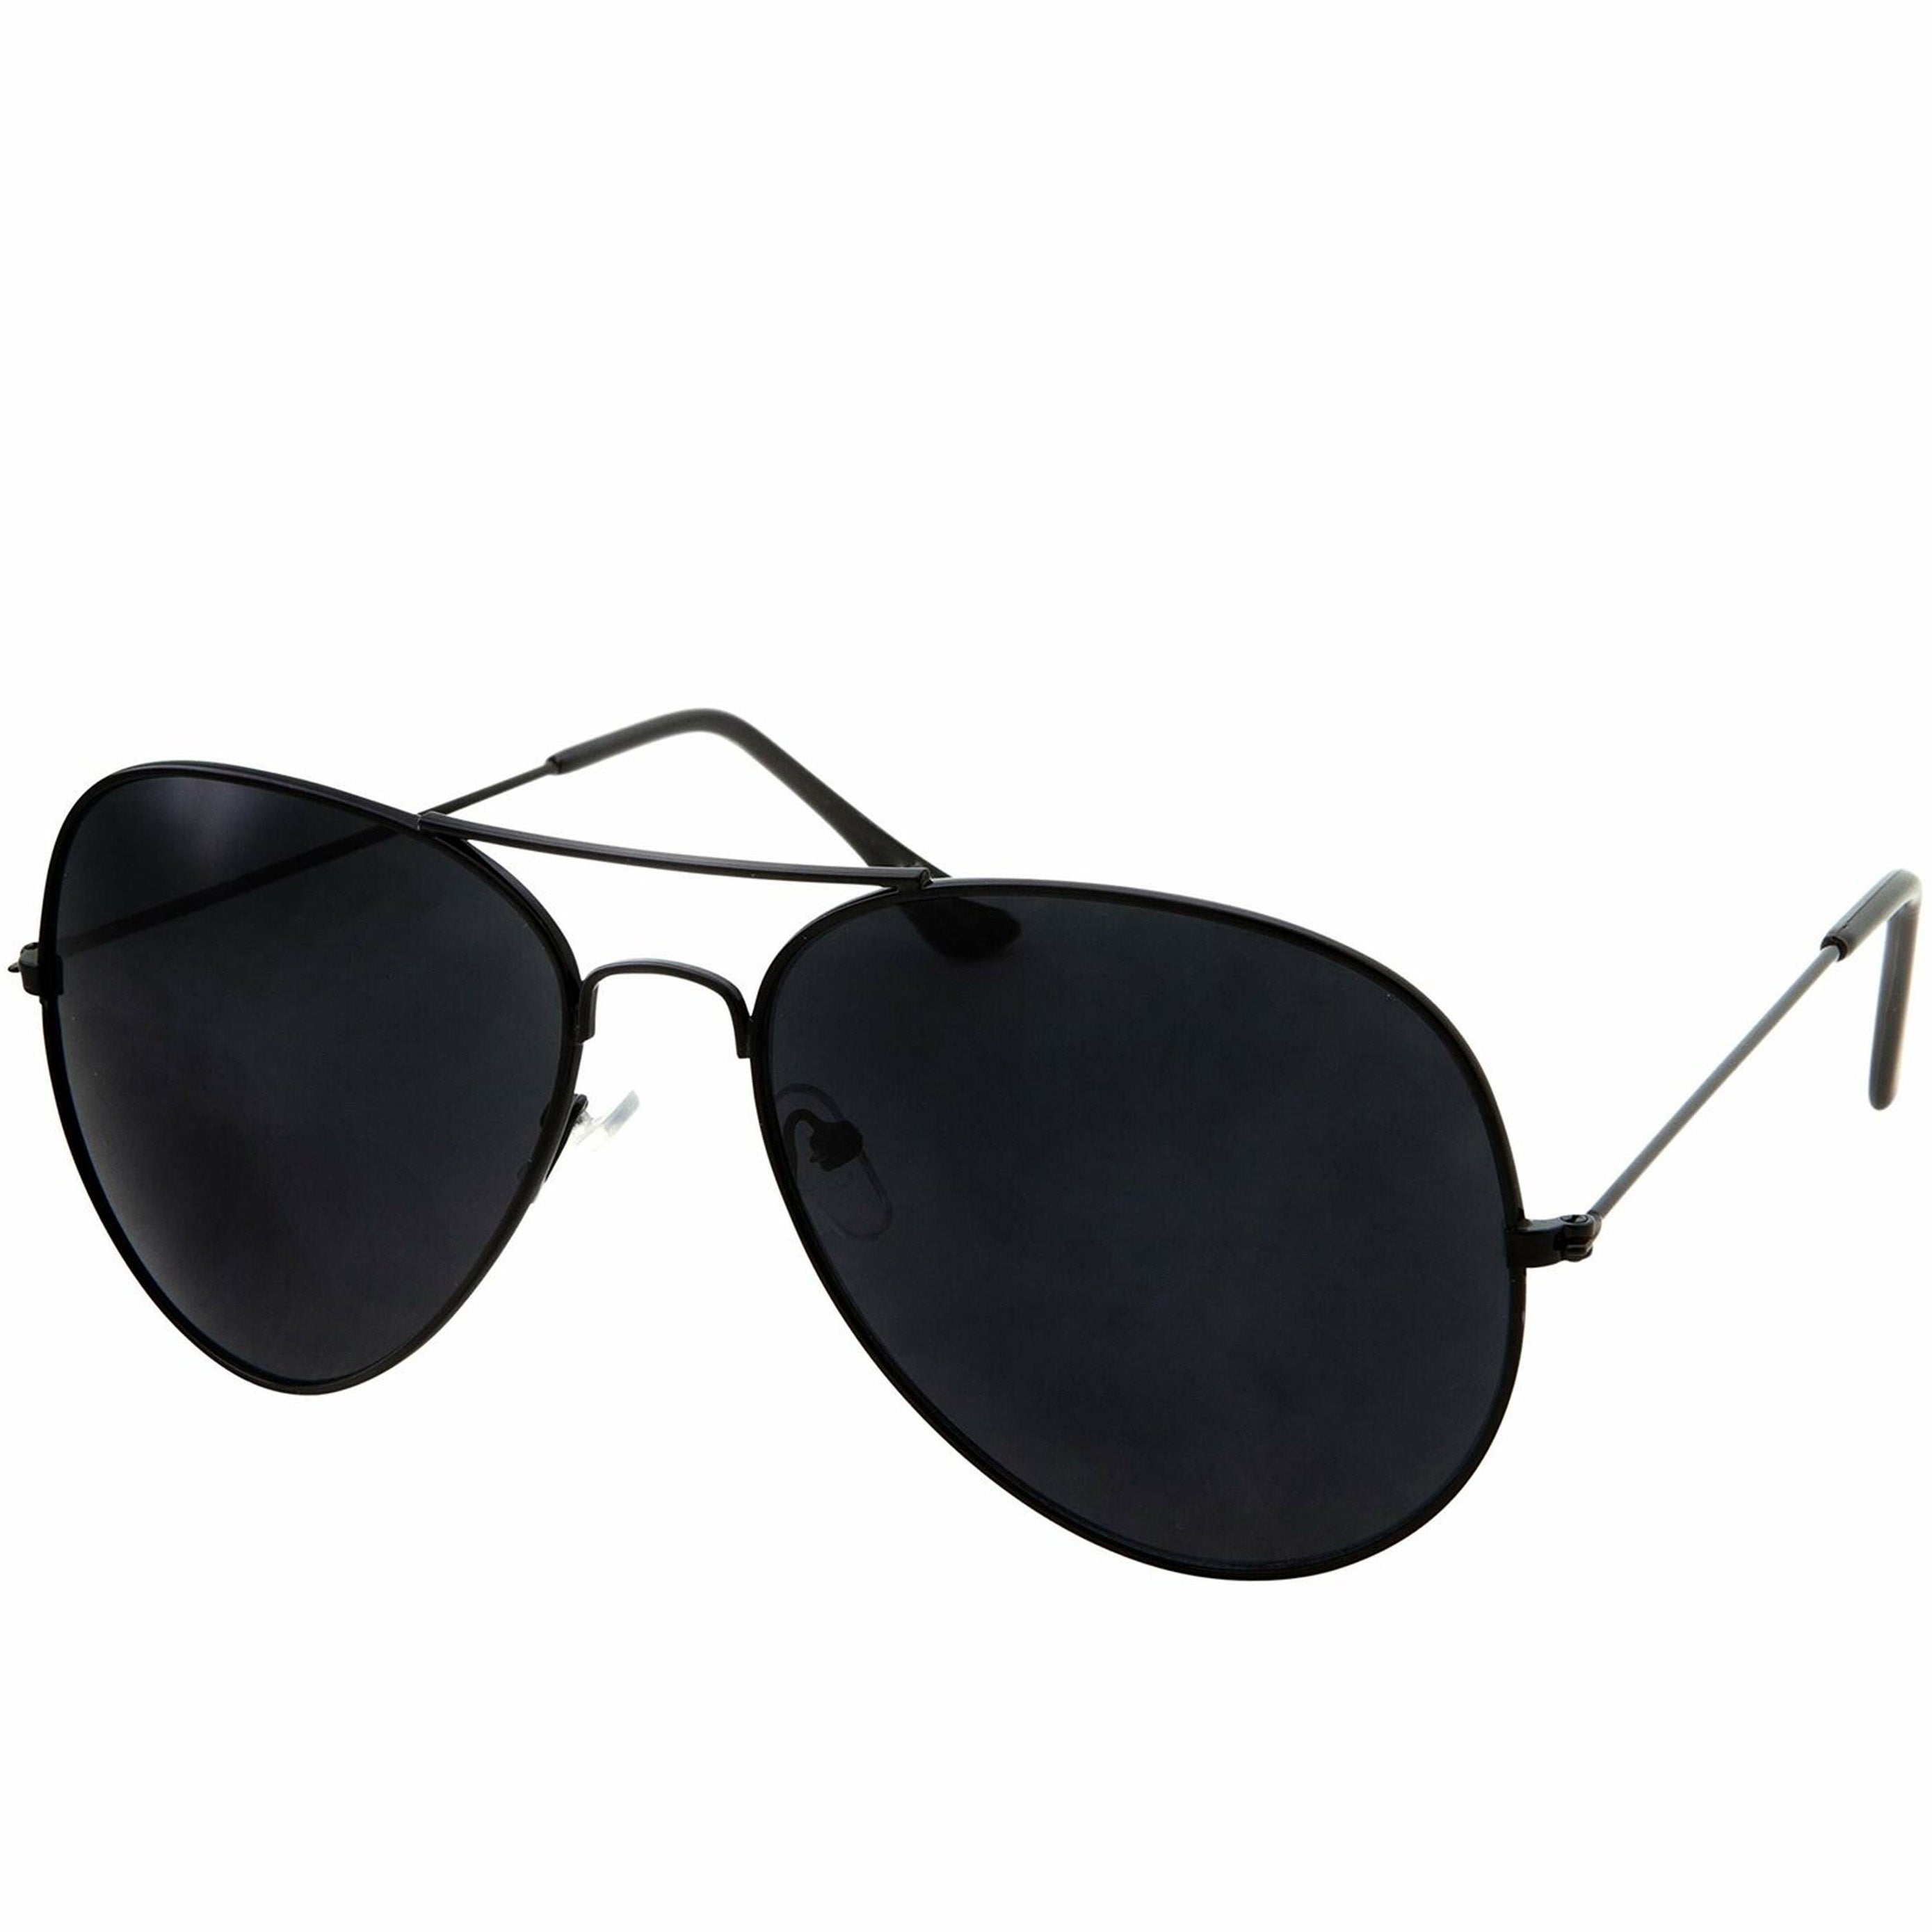 Oversized - 60mm Super Dark Lens Limo Tint Pilot Sunglasses - Men and Women Privacy Sunglasses